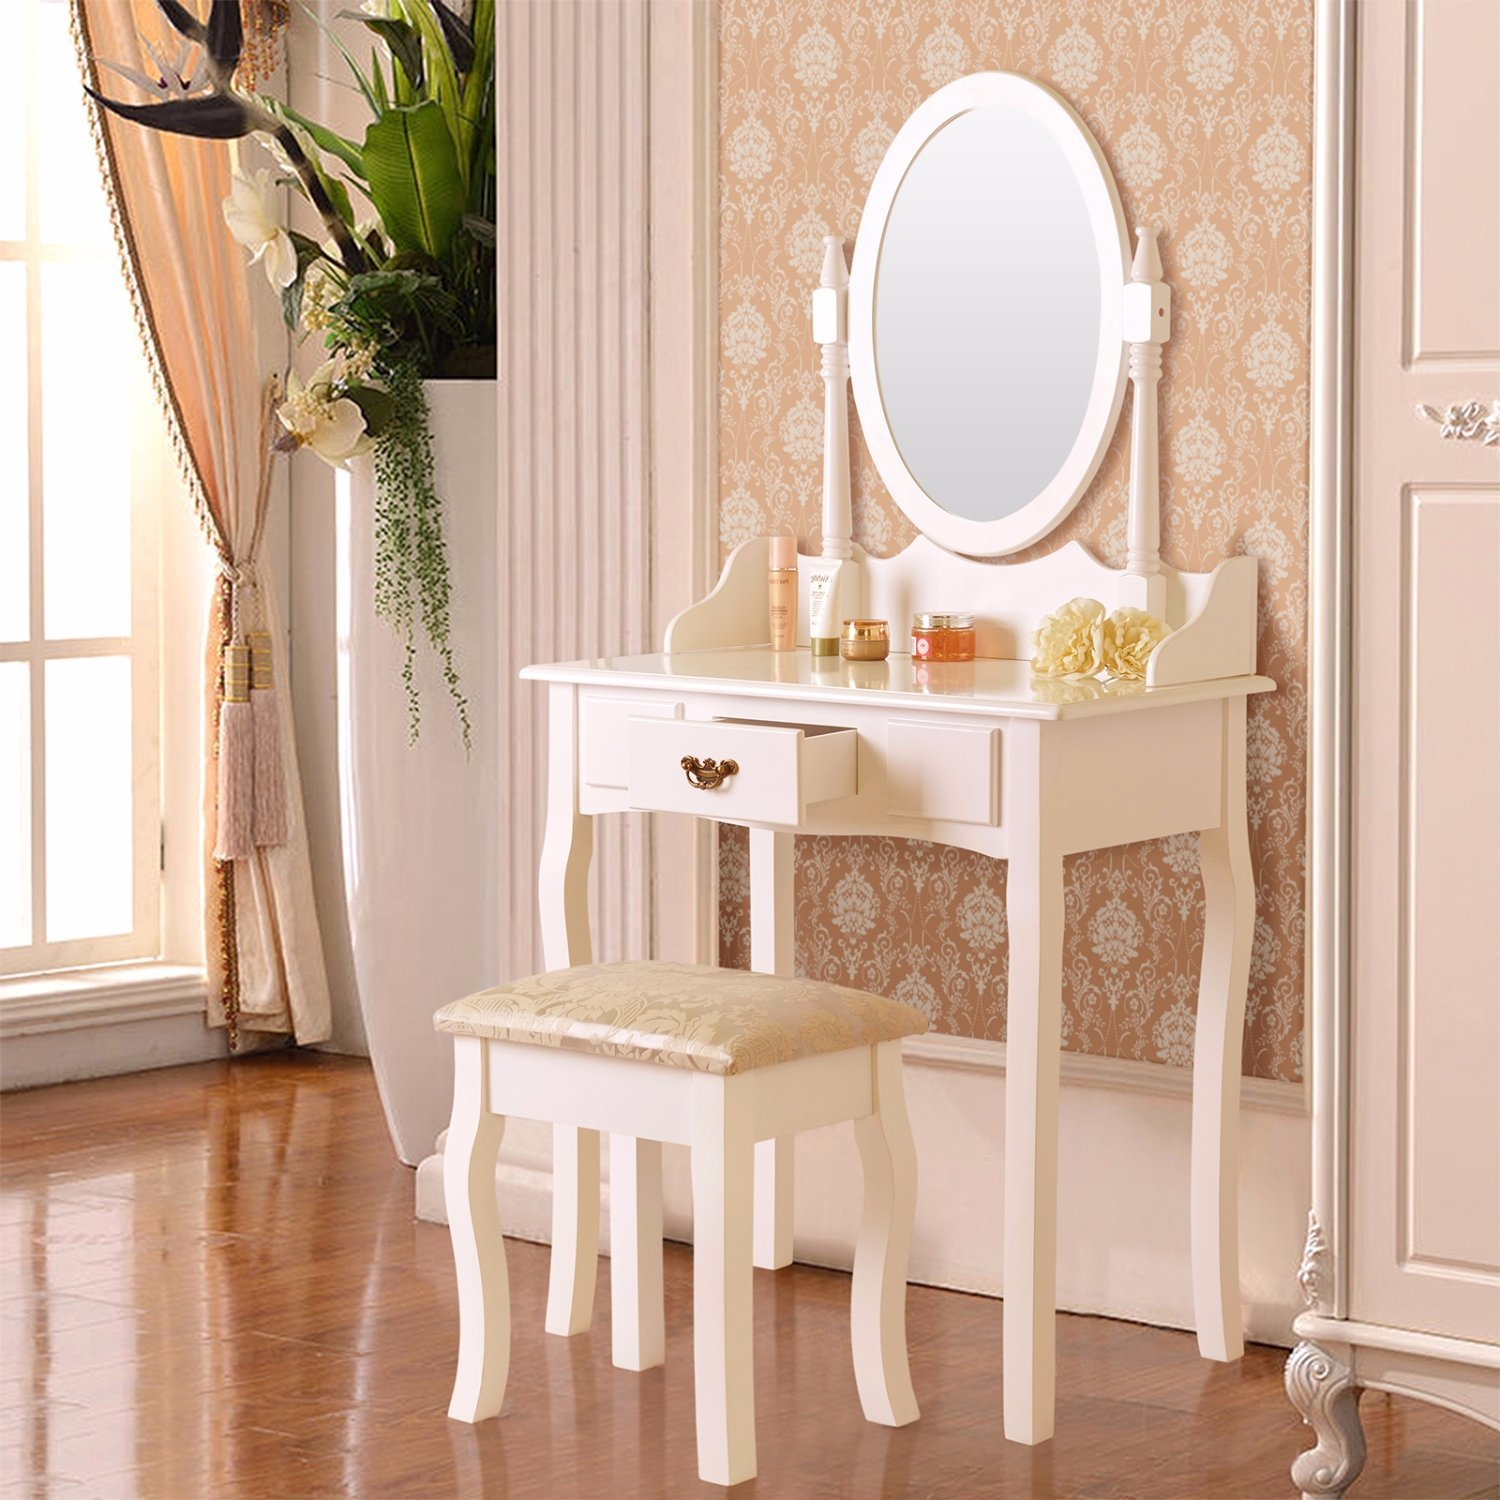 Mecor Vanity Makeup Table Set Dressing Table With Stool And Oval Mirror, White (1